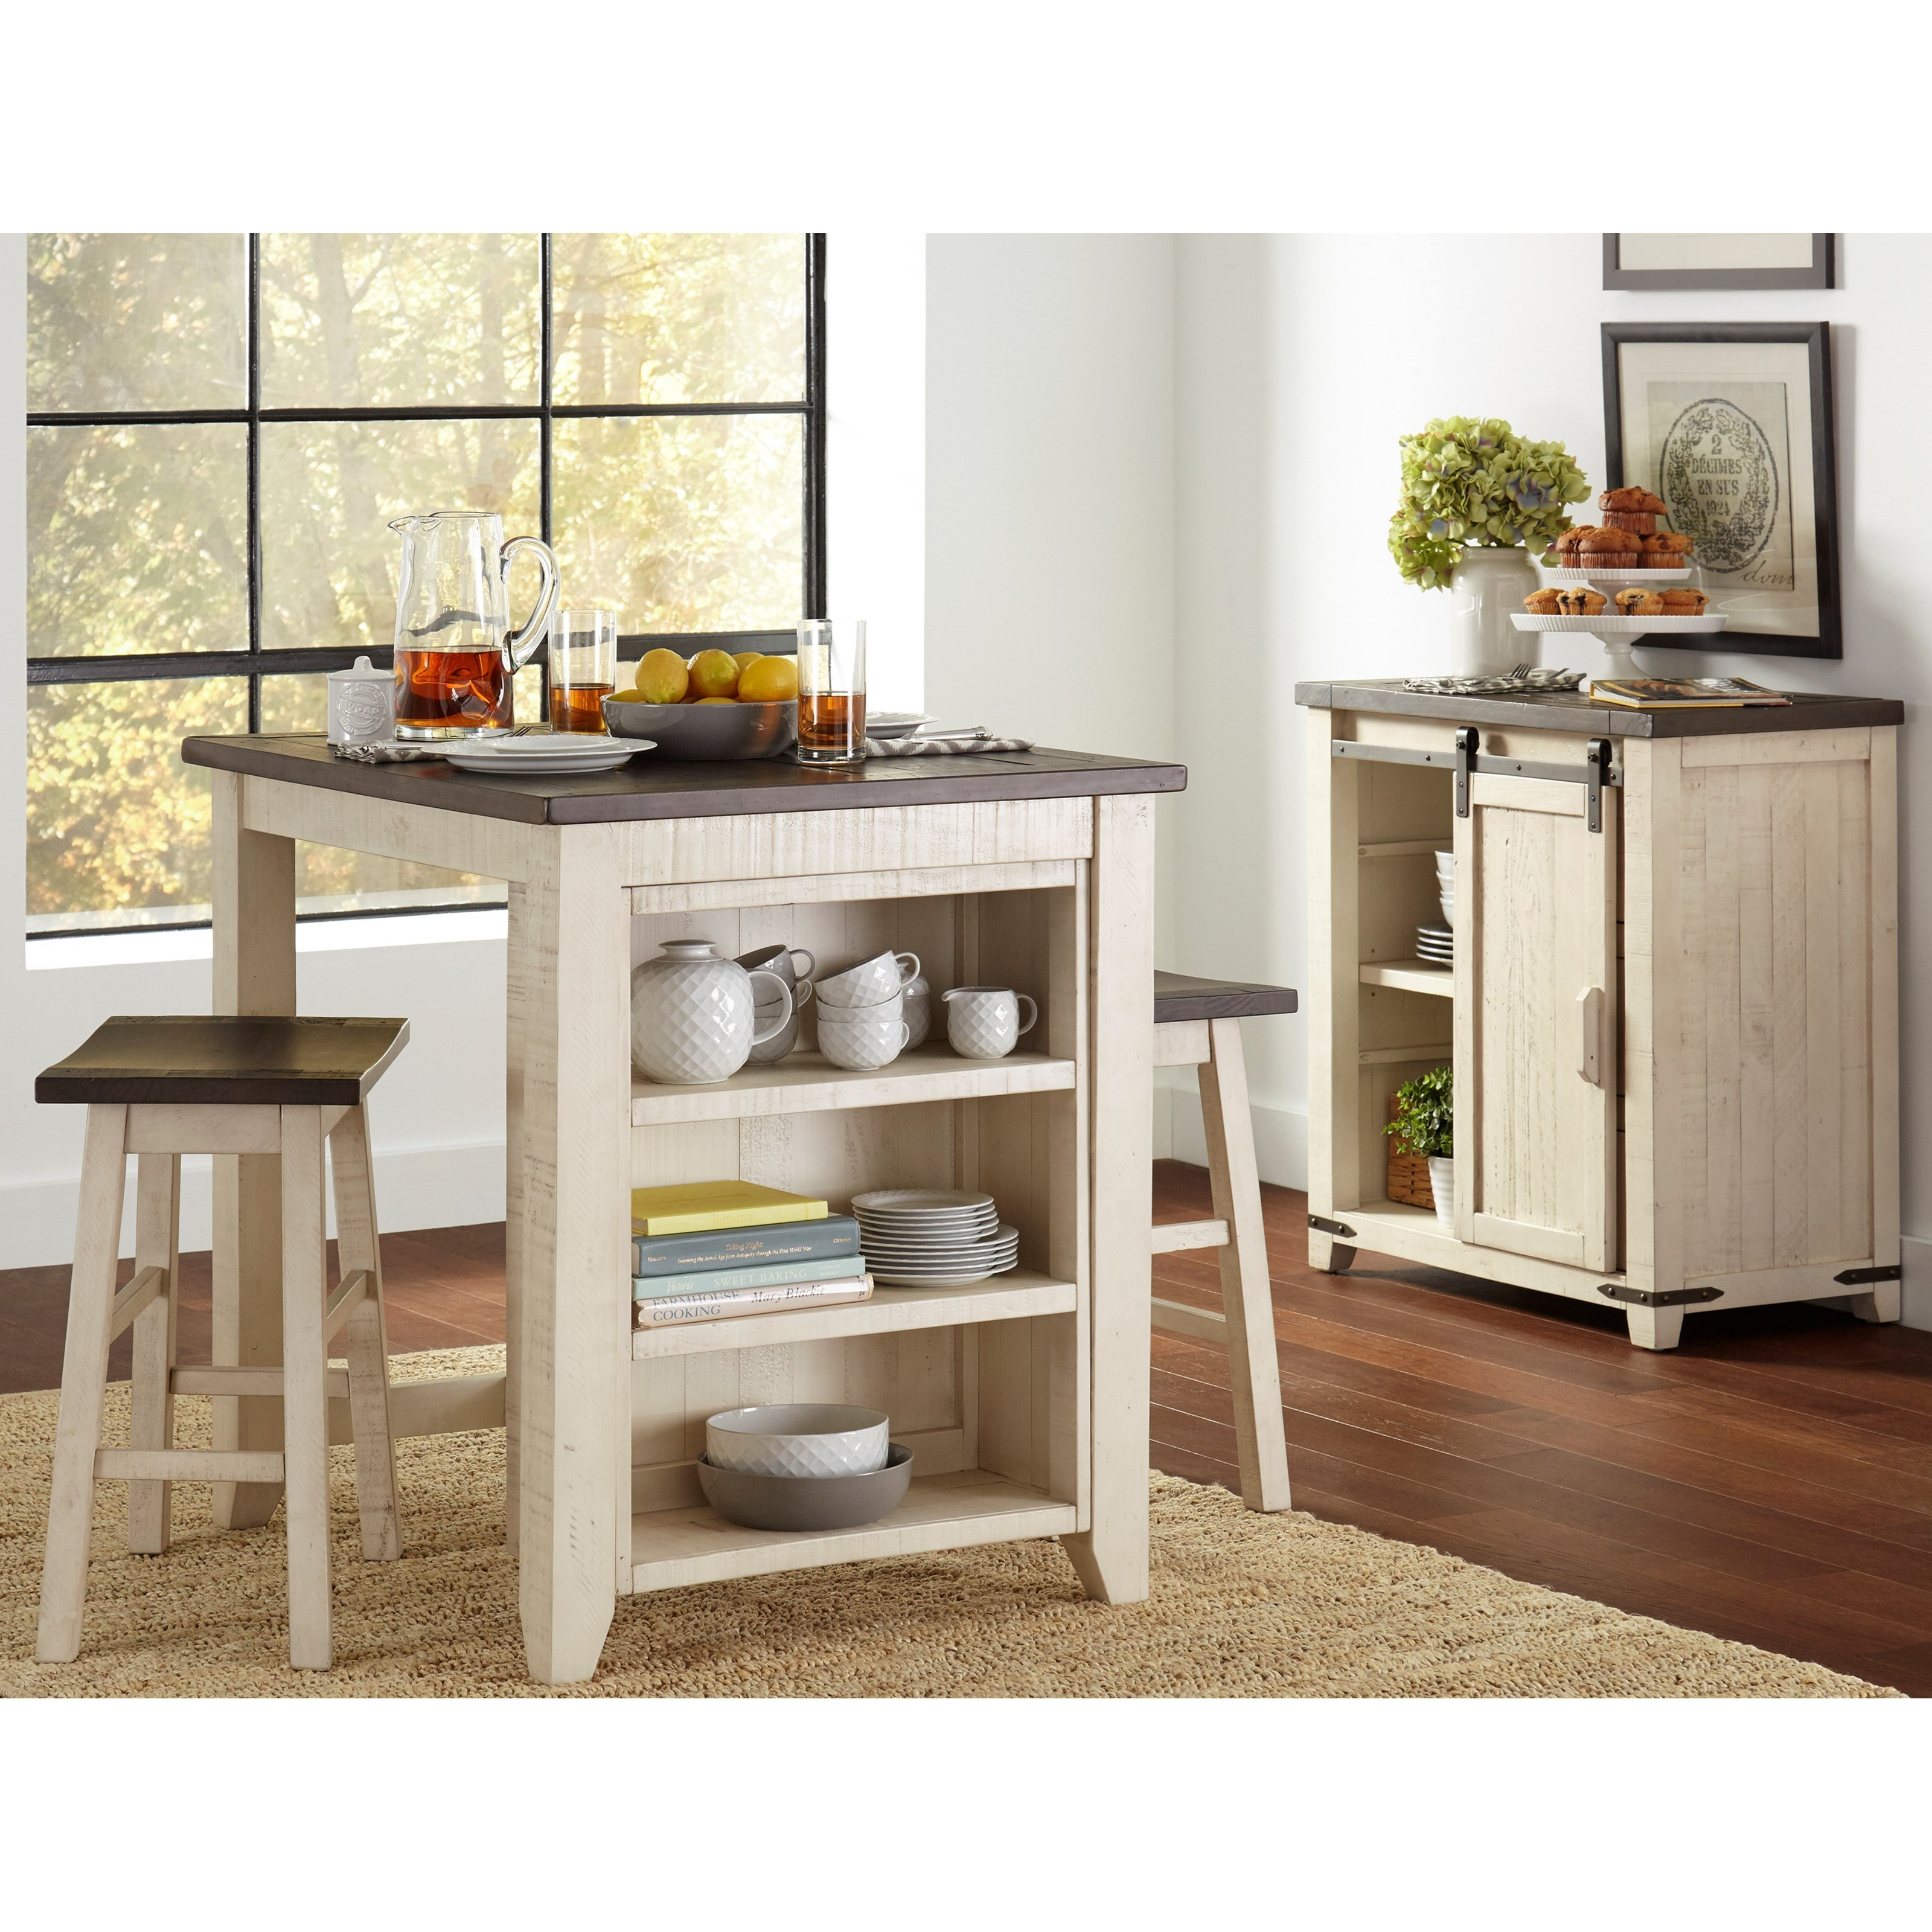 Madison County 3 Piece Counter Height Table Set by Jofran at Zak's Home